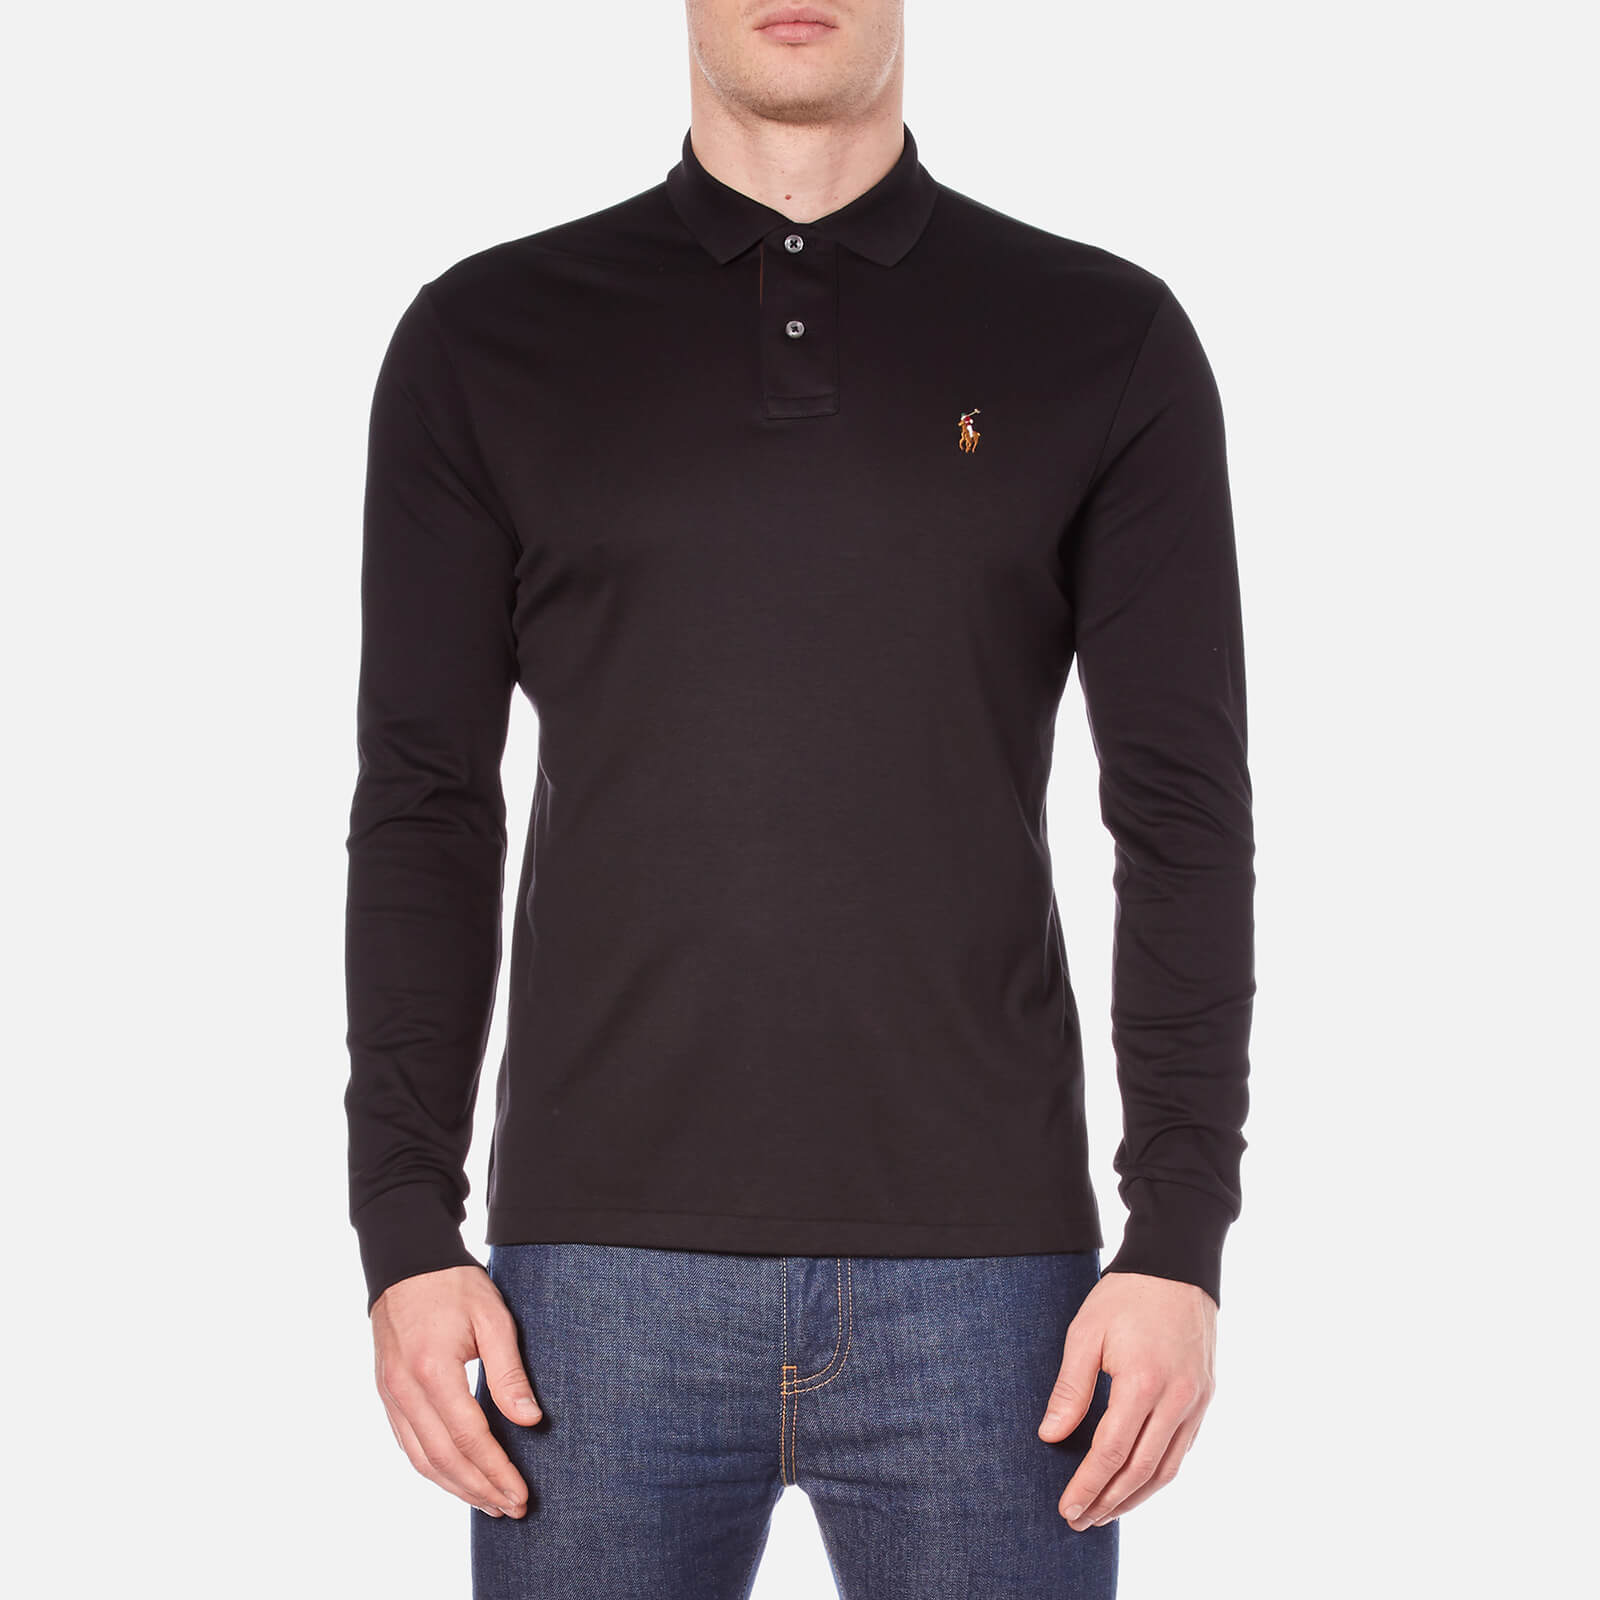 74456363b2aa Polo Ralph Lauren Men's Long Sleeve Custom Fit Polo Shirt - Polo Black -  Free UK Delivery over £50